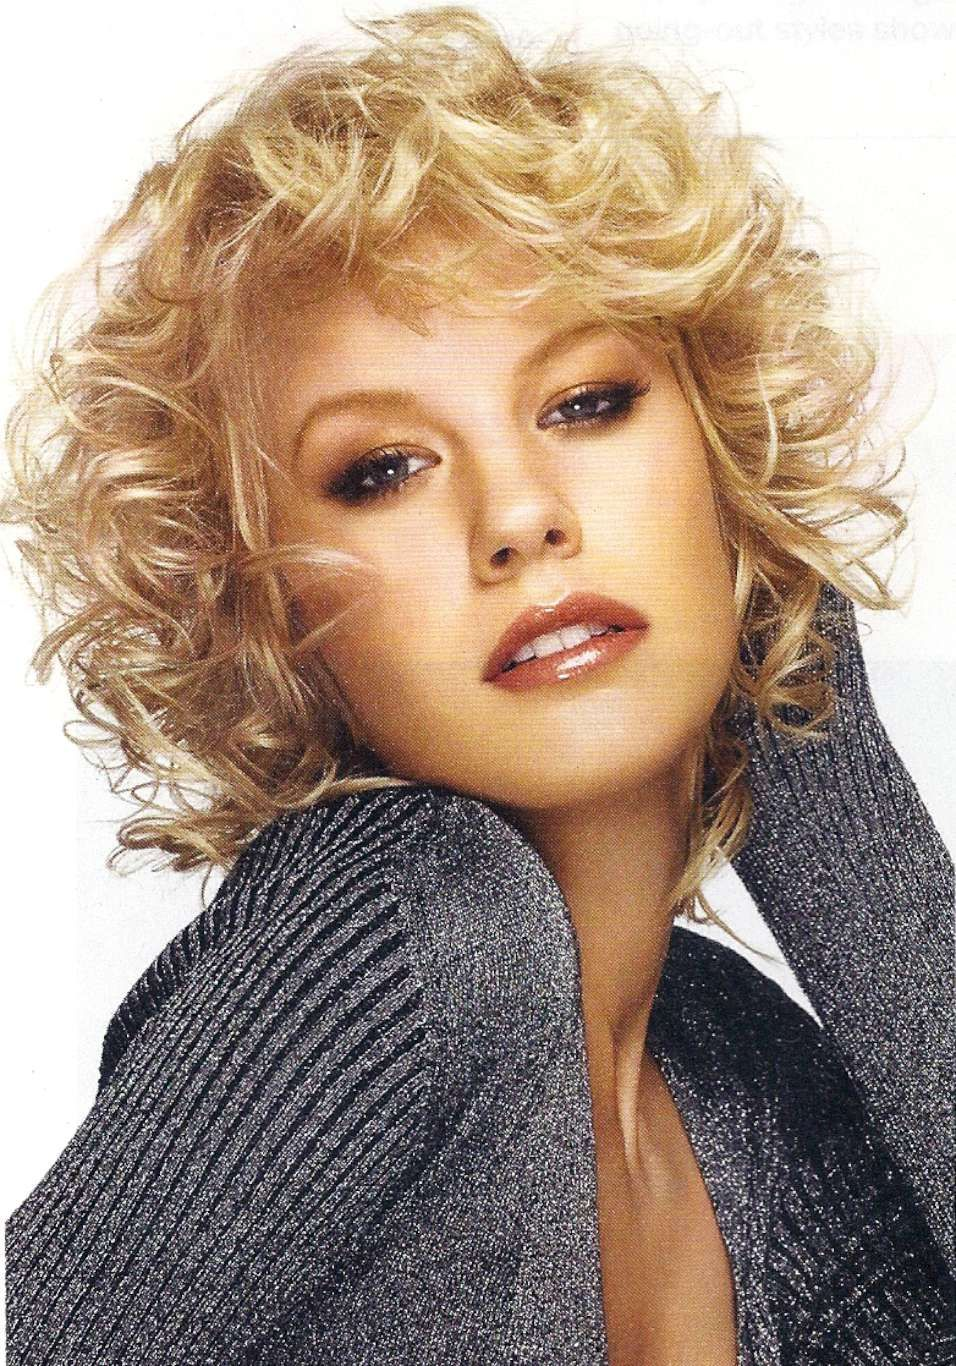 Pleasant 1000 Images About Hair Styles Cuts On Pinterest Curly Hair Short Hairstyles For Black Women Fulllsitofus